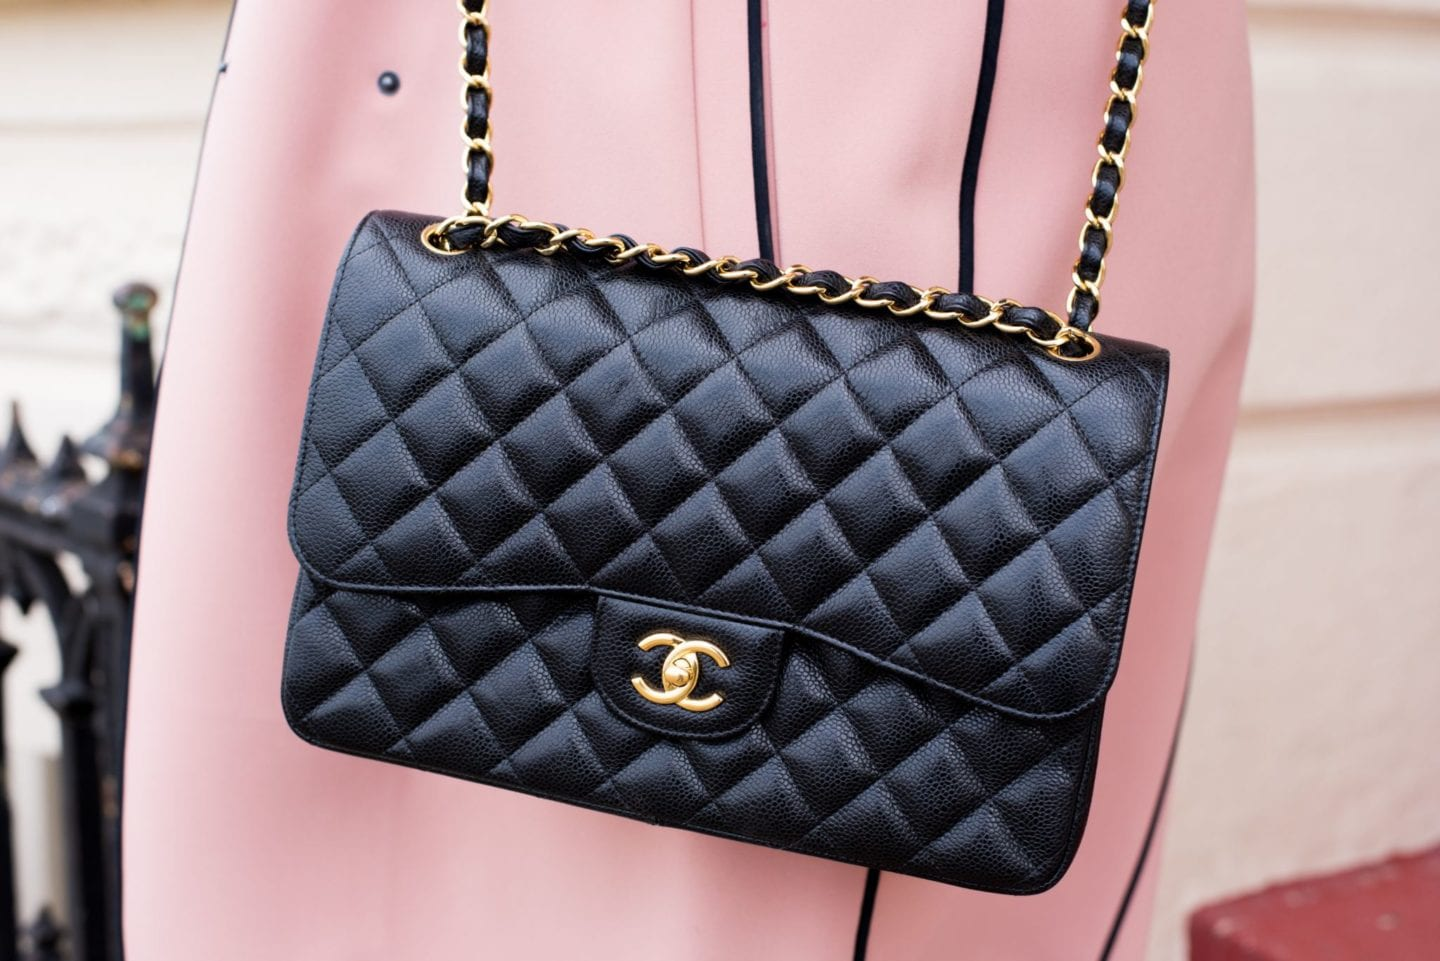 chanel handbag black leather jumbo